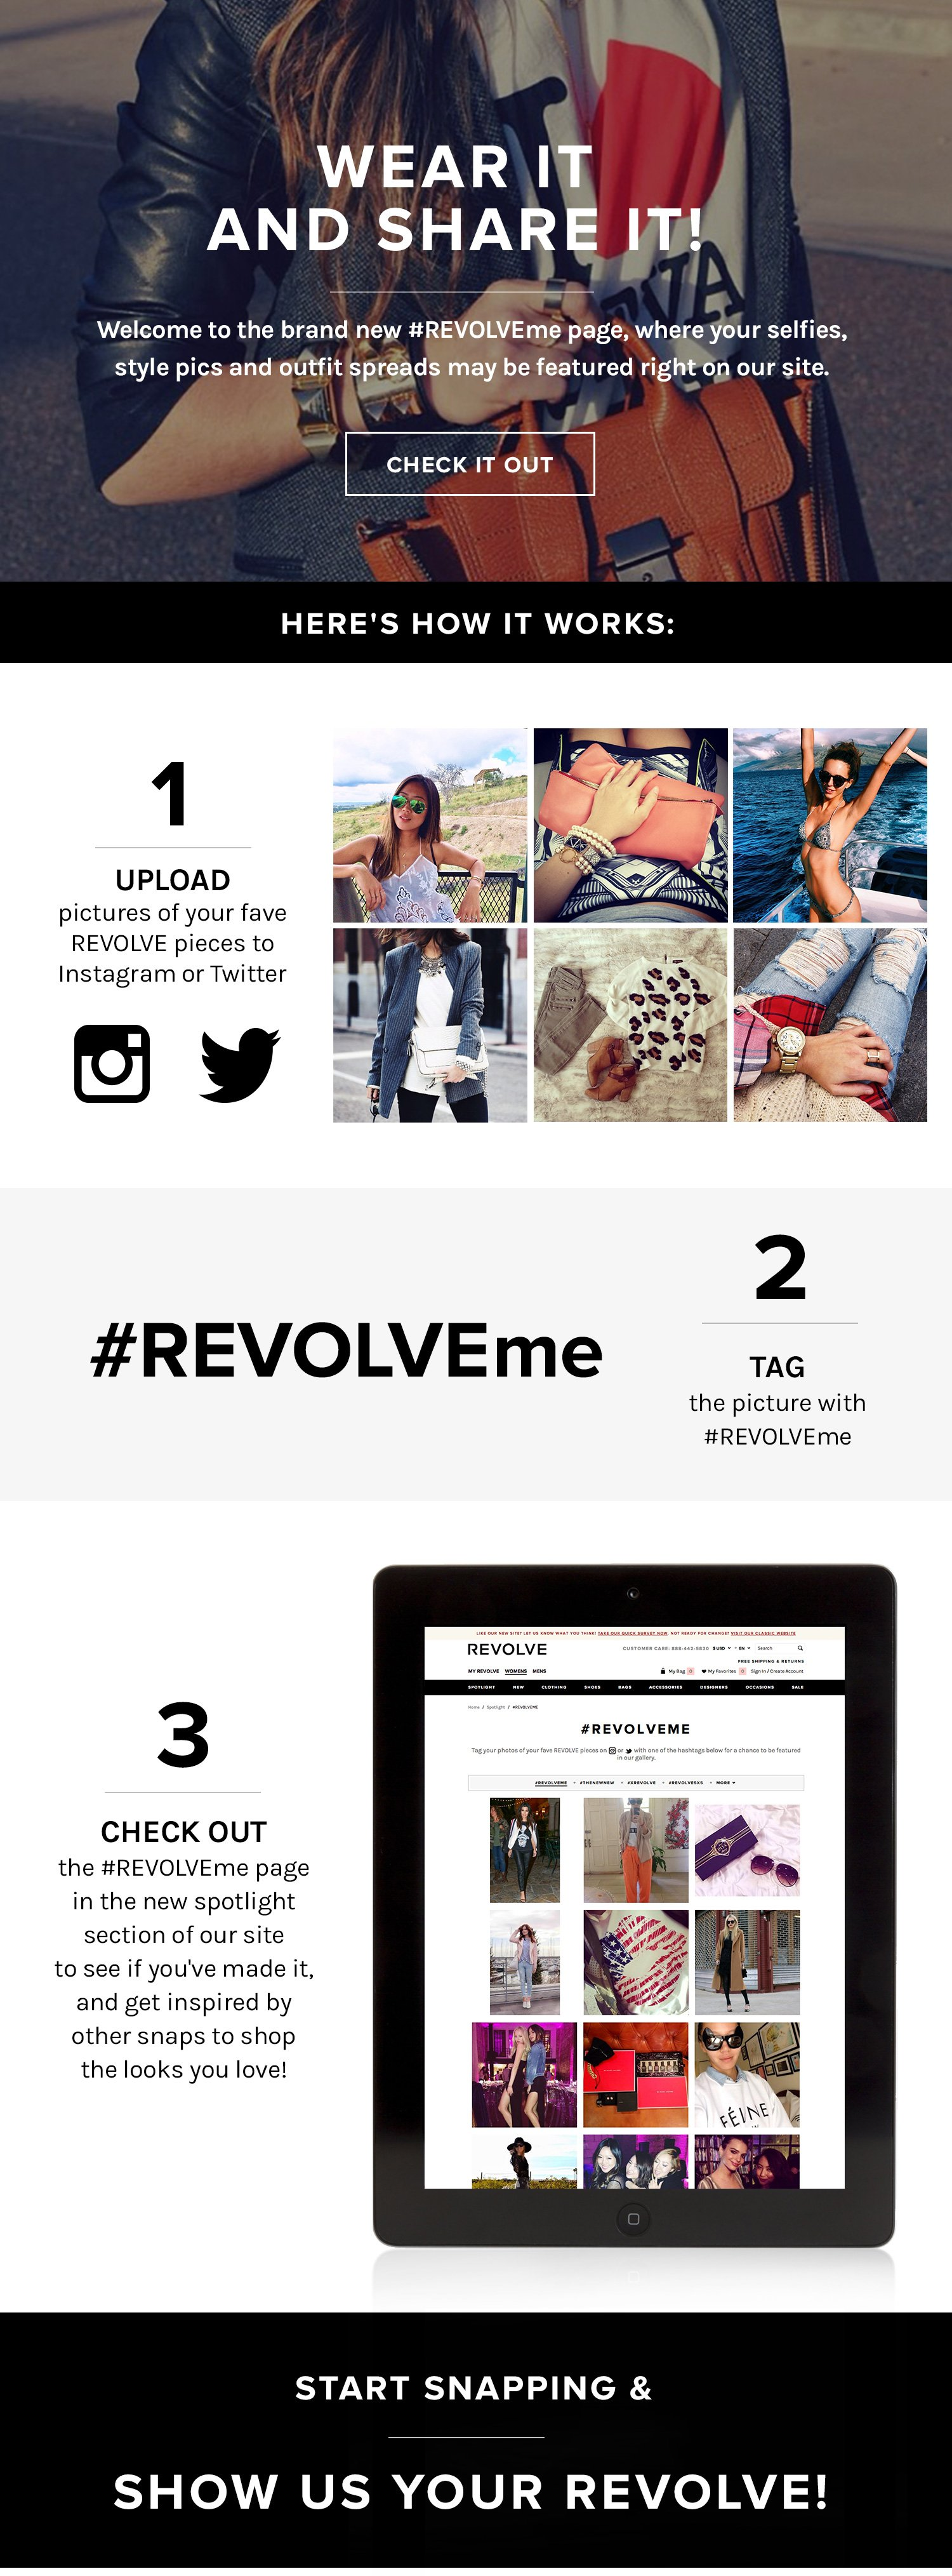 WEAR IT AND SHARE IT! Welcome to the brand mew #REVOLVEme page, where your selfies, sryle pics and outfit spreads may be featured right on our site! CHECK IT OUT